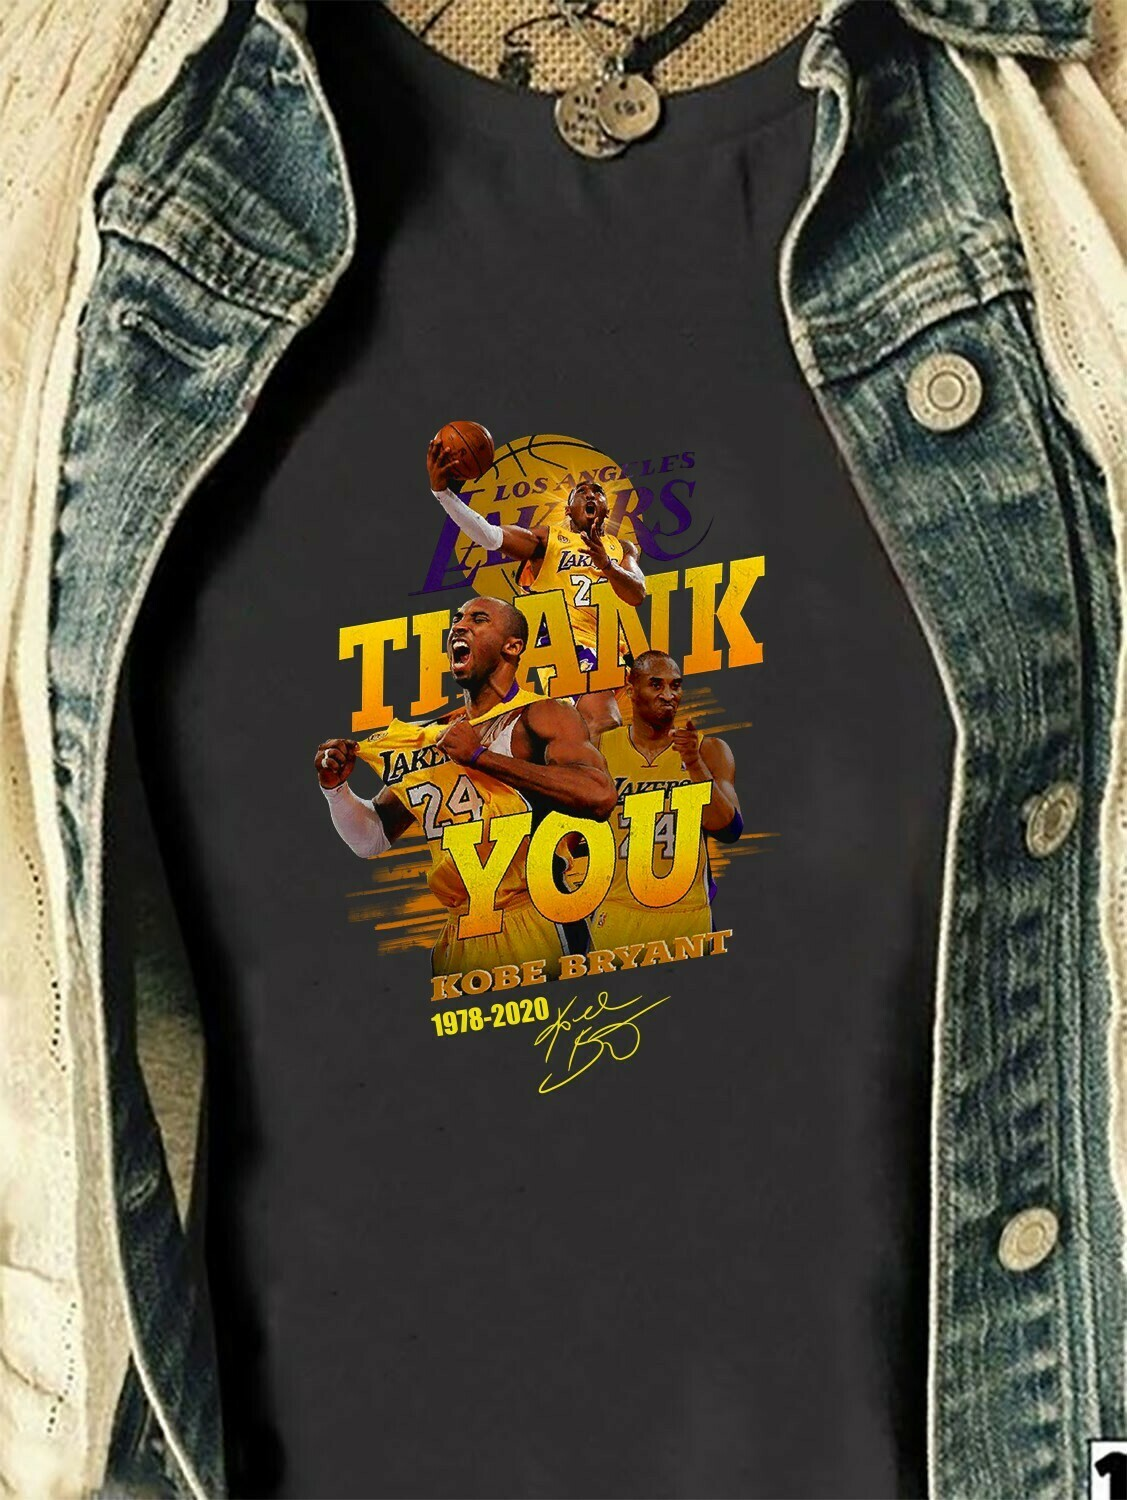 Los Angeles Lakers thank you Kobe Bryant 1978 2020 legends never die signature,24 Kobe Bryant Lakers thank you for the NBA memories T-Shirt Long Sleeve Sweatshirt Hoodie Jolly Family Gifts